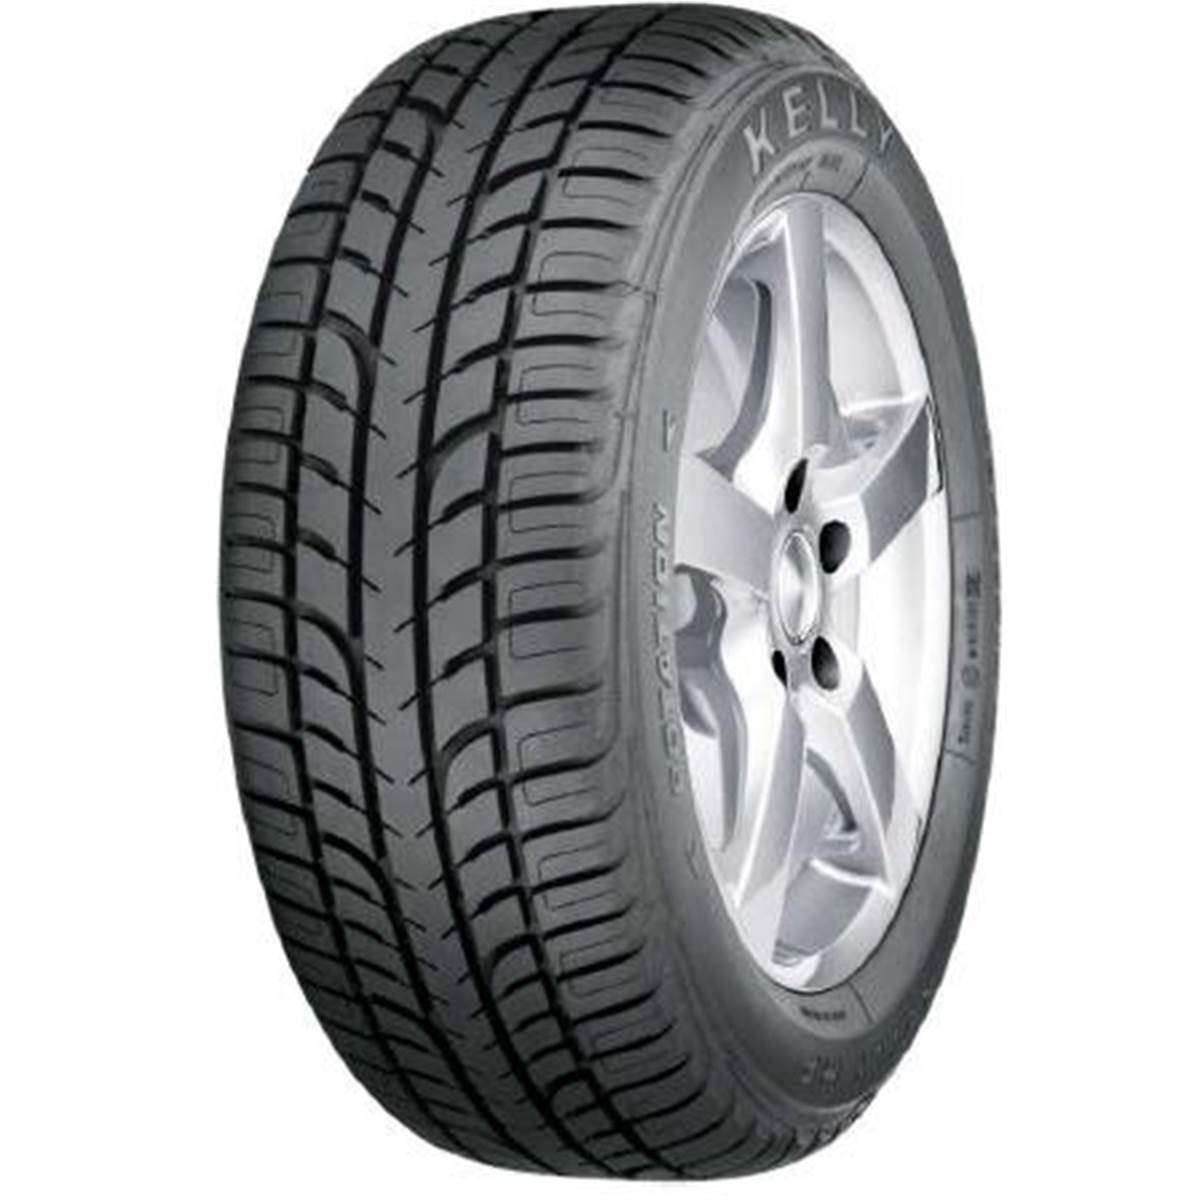 Pneu Kelly 195/65R15 91H HP